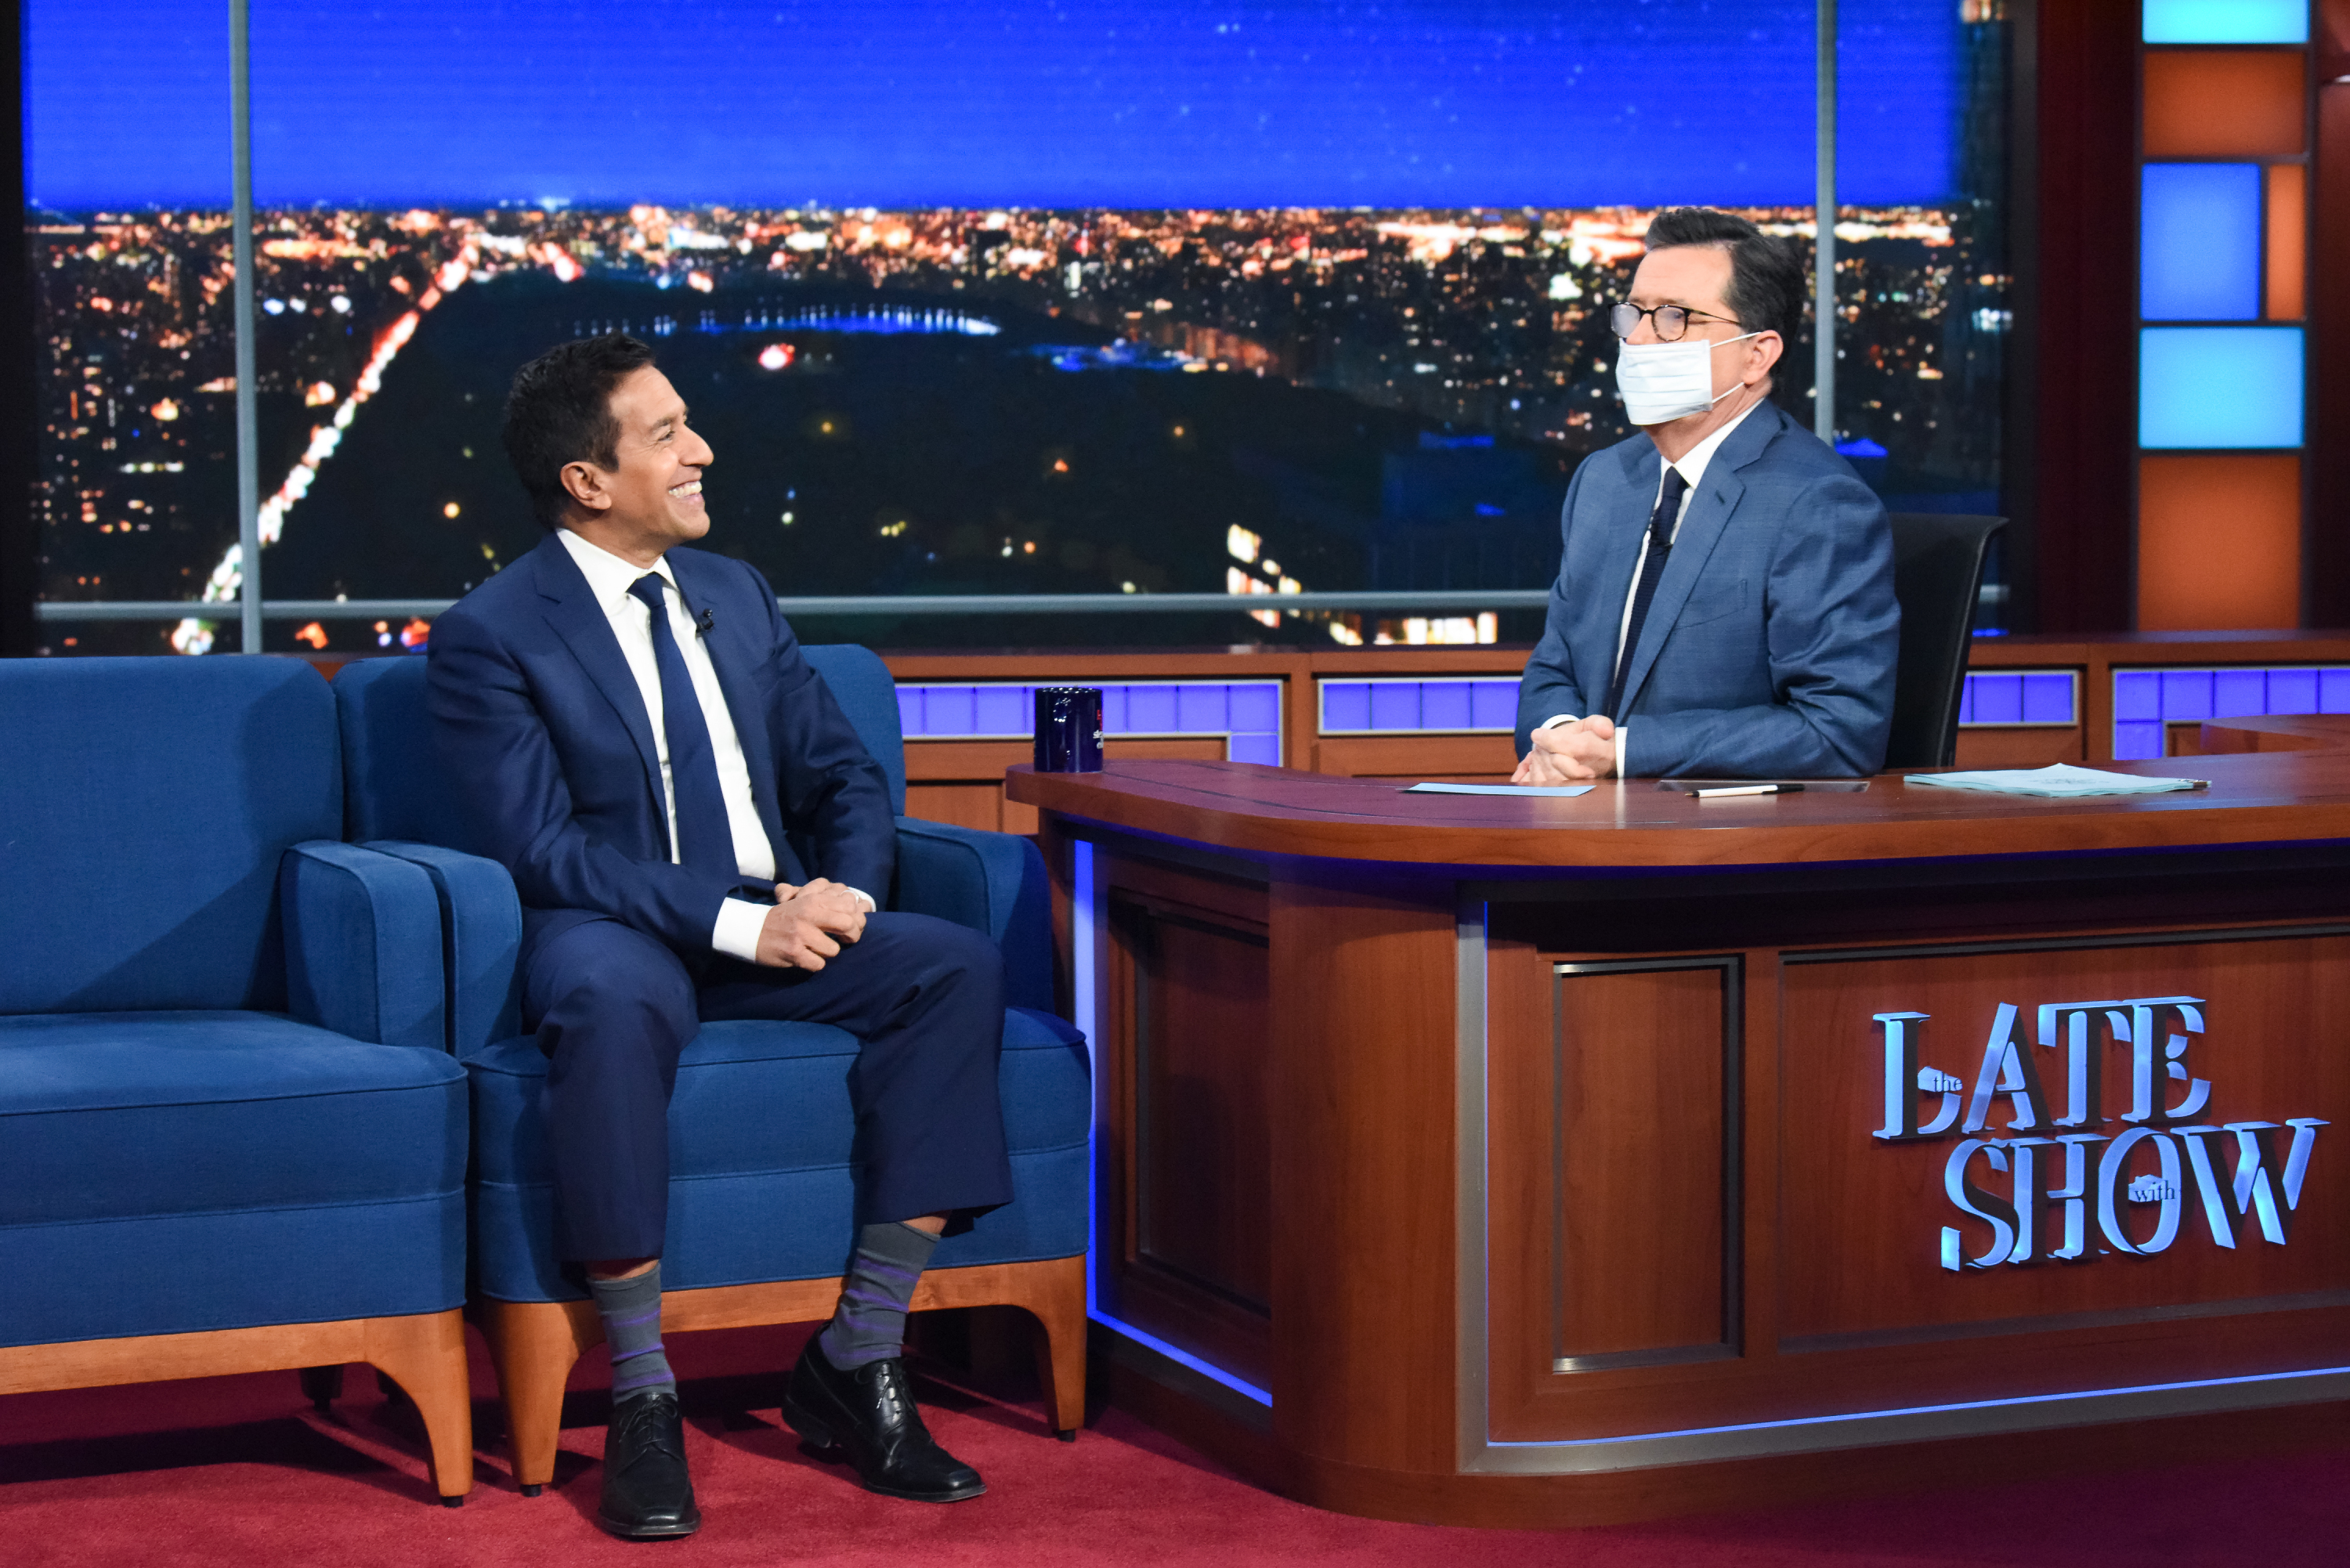 'The Late Show with Stephen Colbert' and guest Dr. Sanjay Gupta during the March 12, 2020 show.